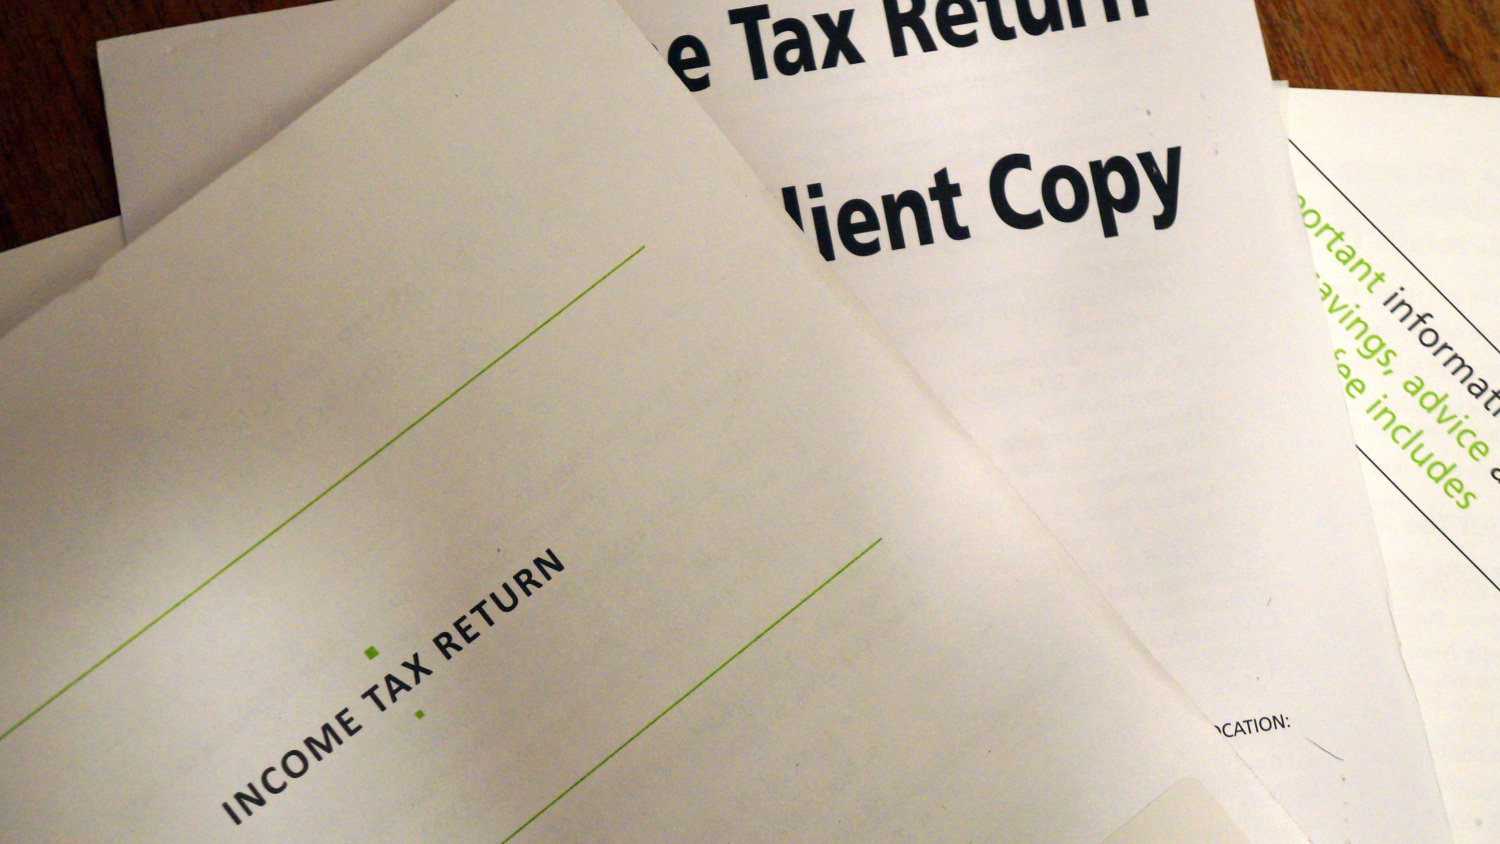 Man Sentenced To Prison For Aiding And Assisting In Preparation Of False Tax Return – CBS Atlanta